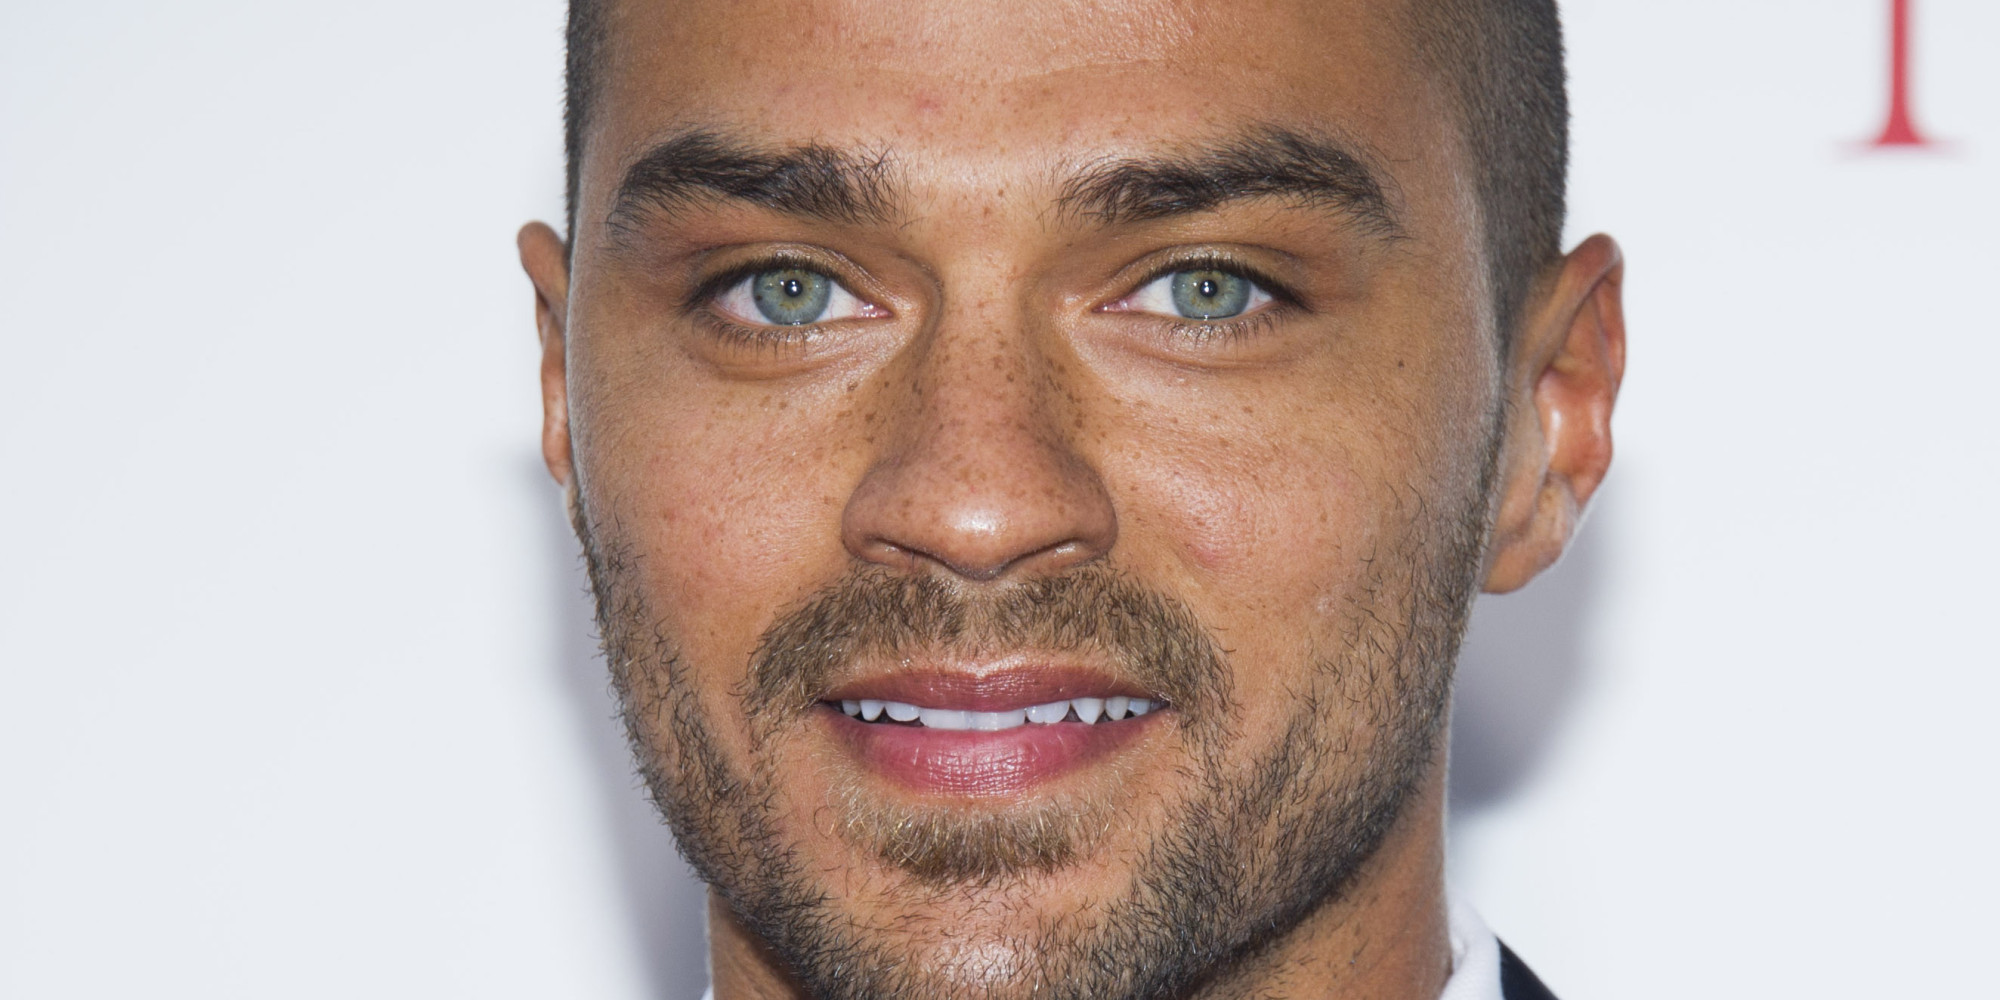 Jesse Williams Speaks Hard Lies About Police Brutality (TYT VIDEO